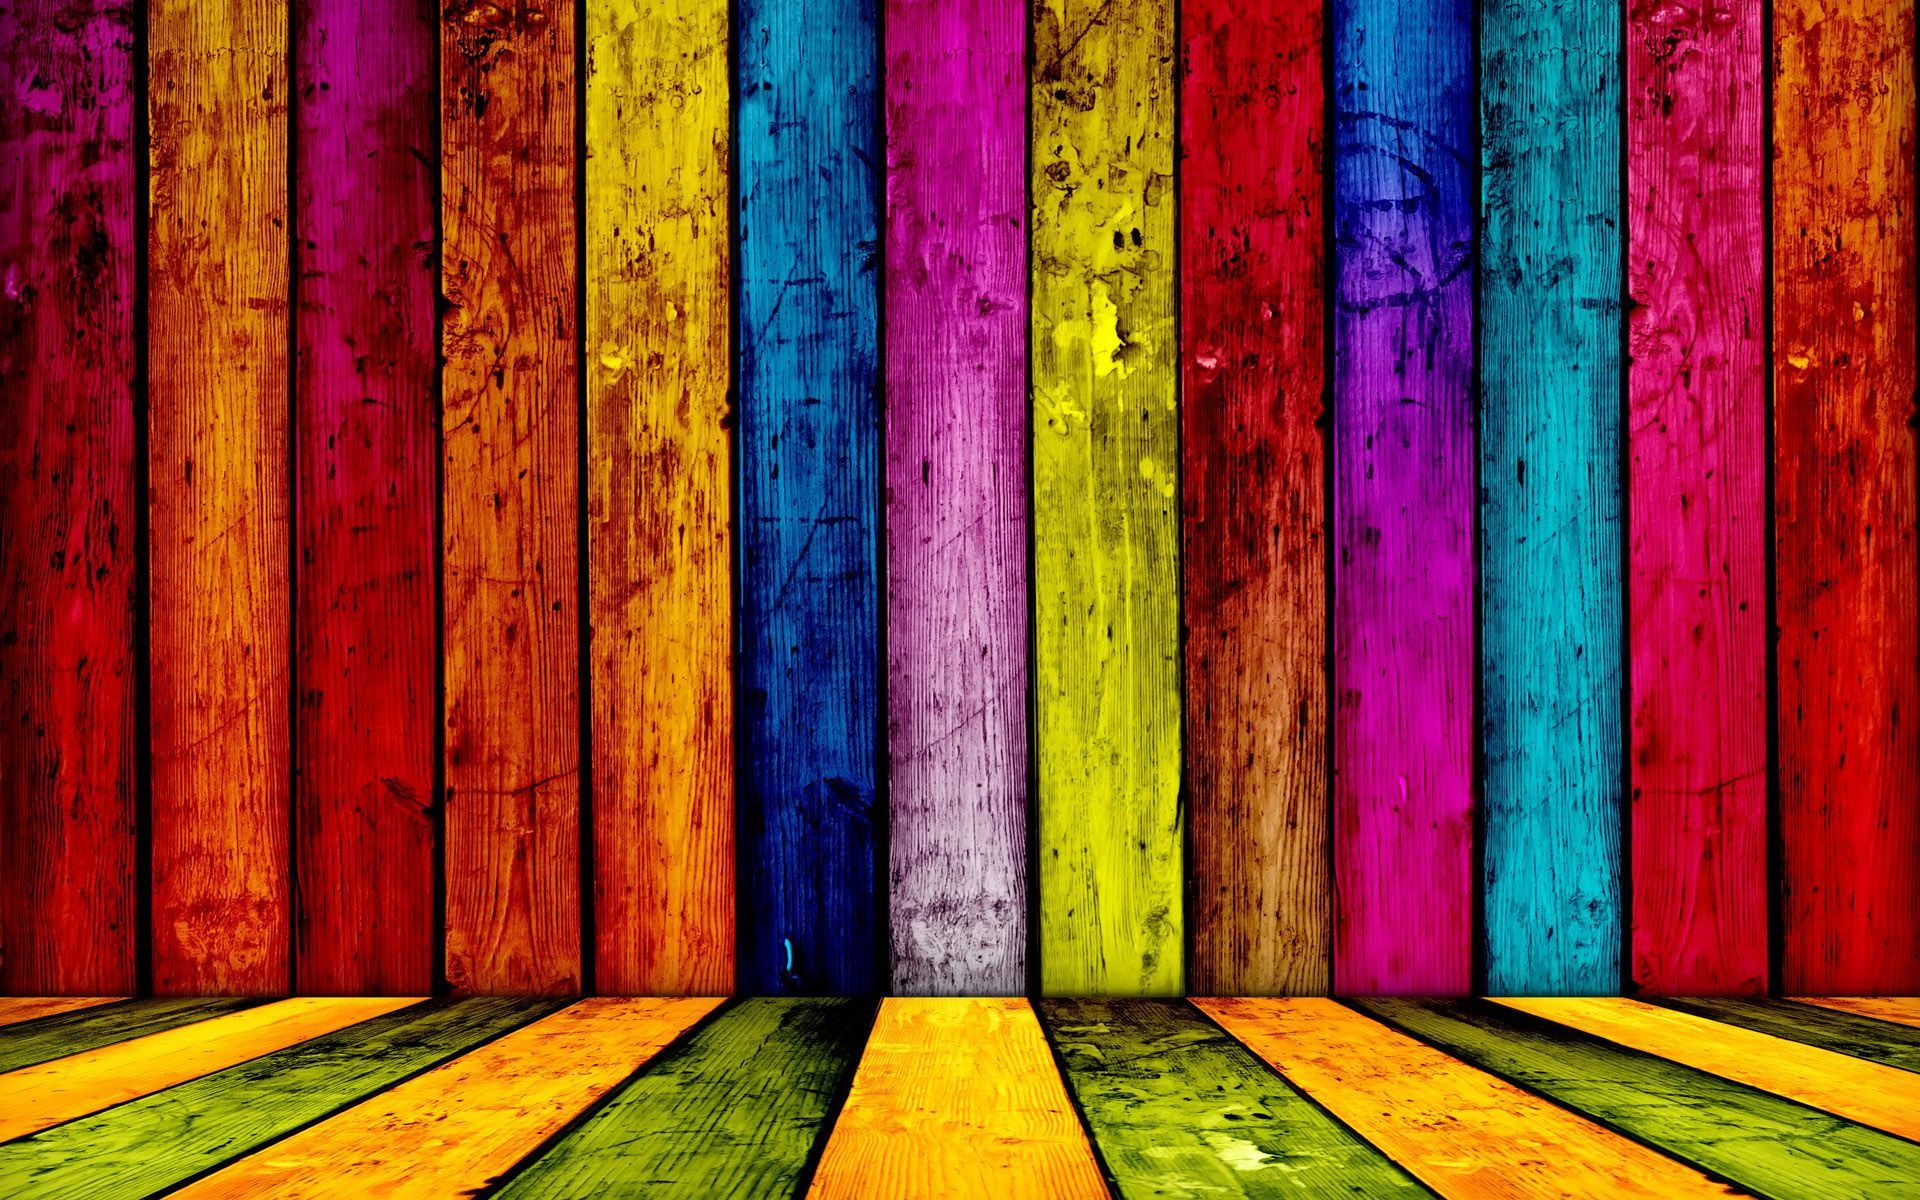 Hd wallpaper rainbow - Wallpapers Hd Colorfull